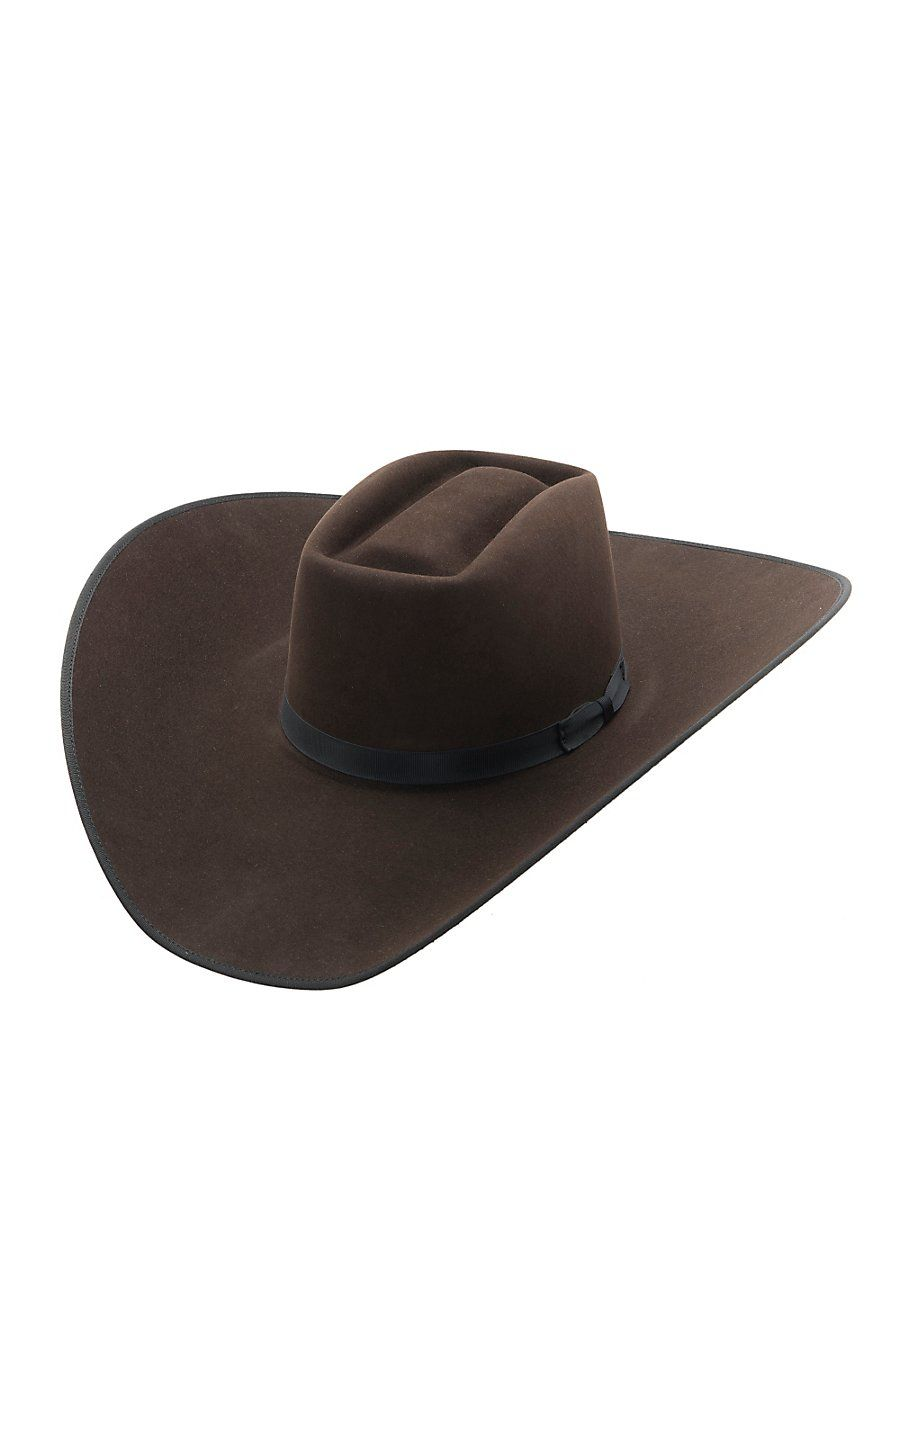 0867f6fefacd84 Rodeo King® 10X Brick Chocolate w/ Black Bound Edge Felt Cowboy Hat ...